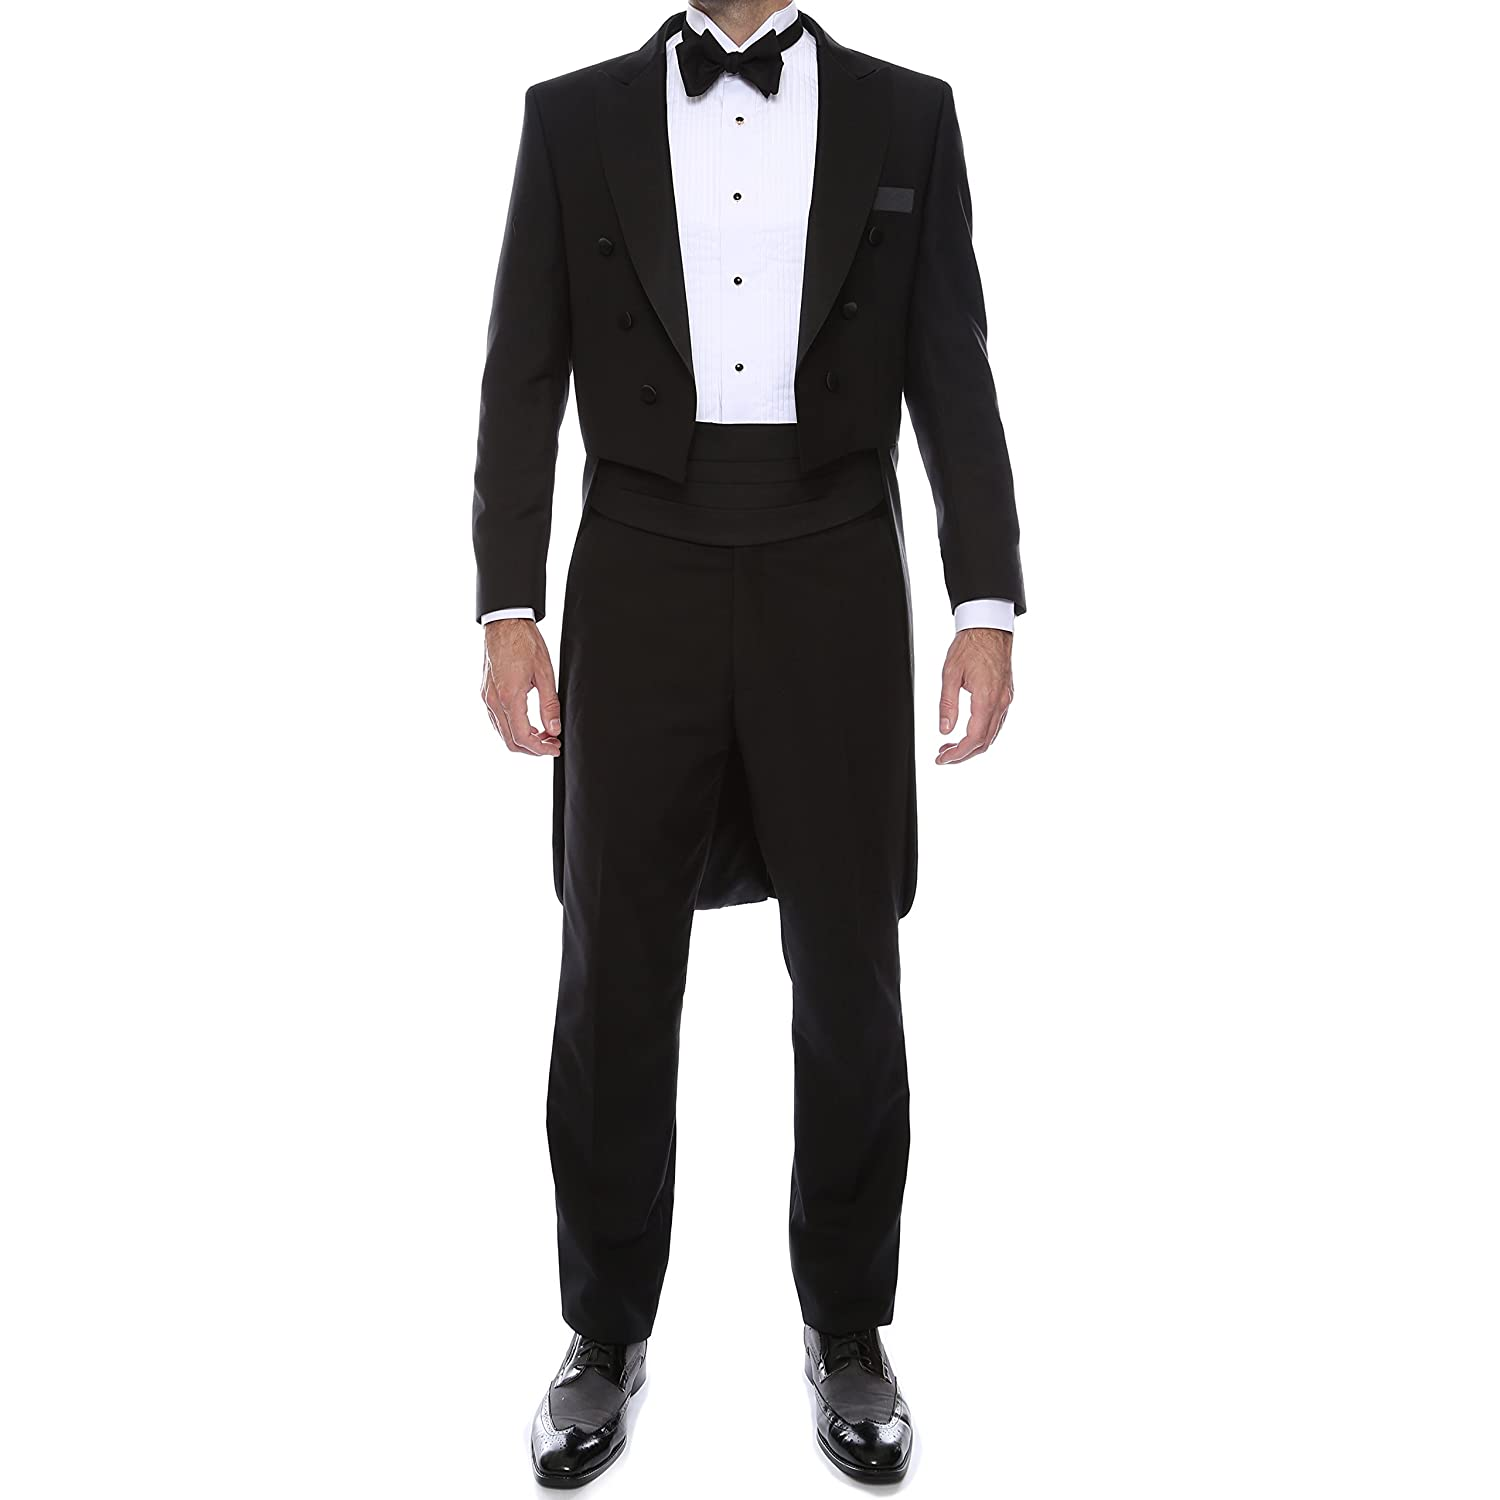 New Vintage Tuxedos, Tailcoats, Morning Suits, Dinner Jackets Ferrecci Premium Mens 2pc Victorian Tail Tuxedo - Tailcoat & Slacks $109.75 AT vintagedancer.com